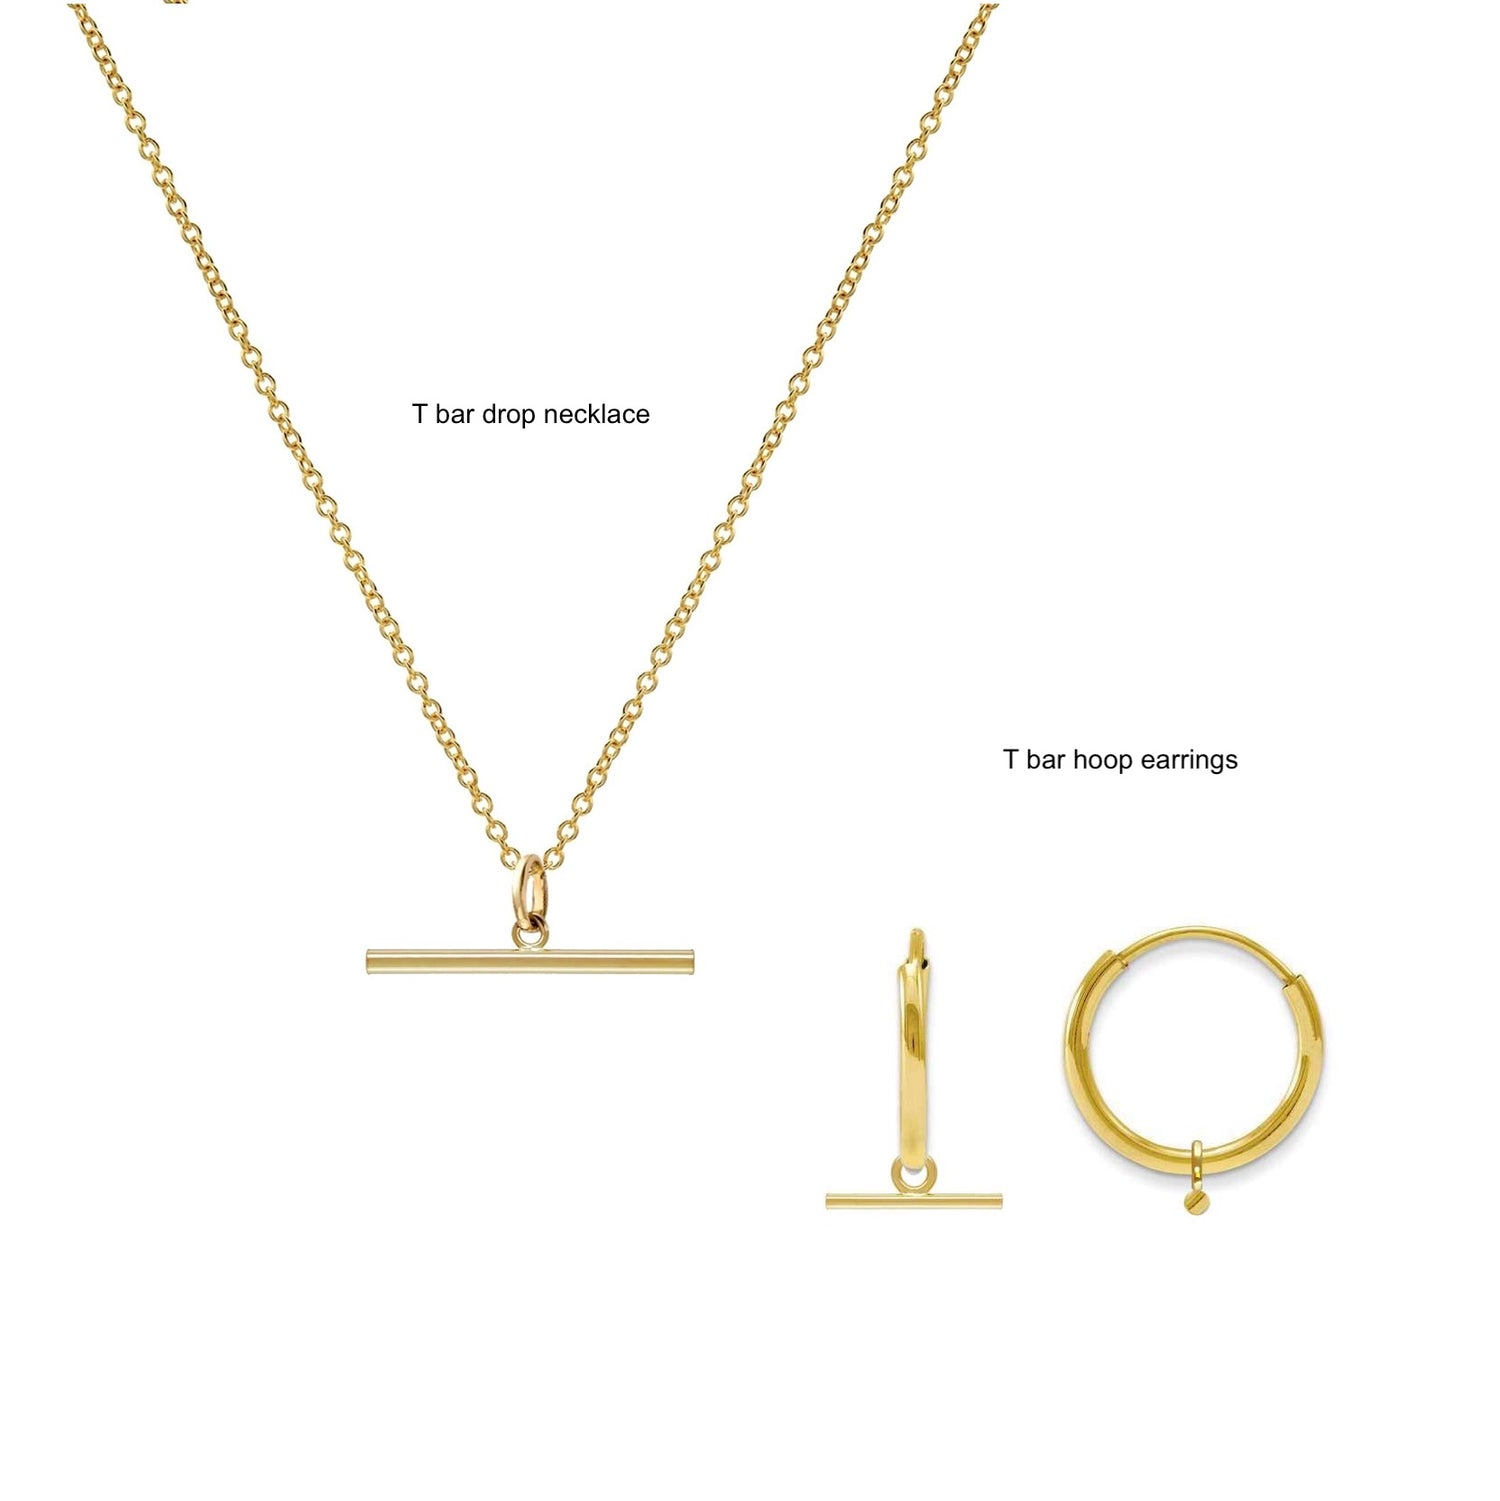 T Bar Drop Necklace